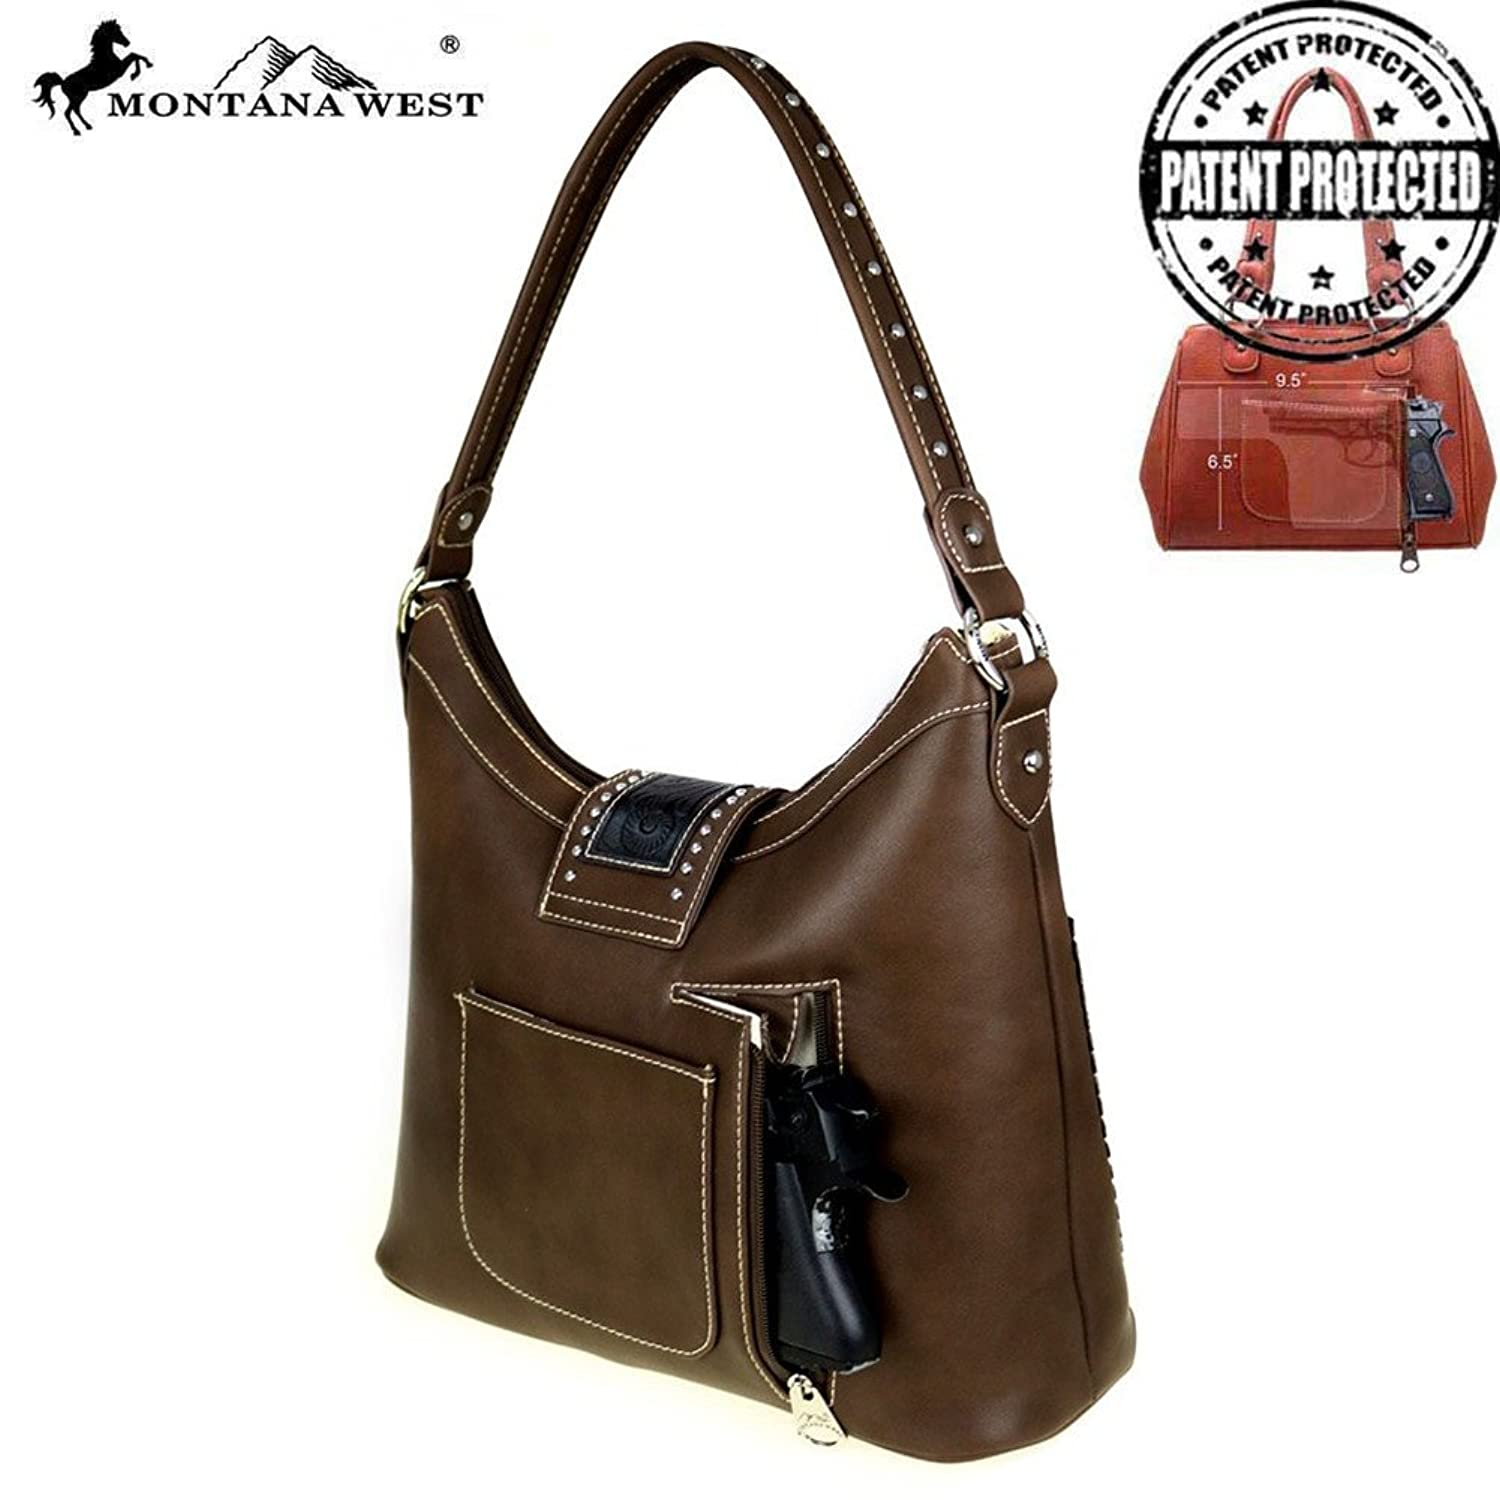 WRLG-116 Montana West Tooling Collection Concealed Hobo in 8 Colors